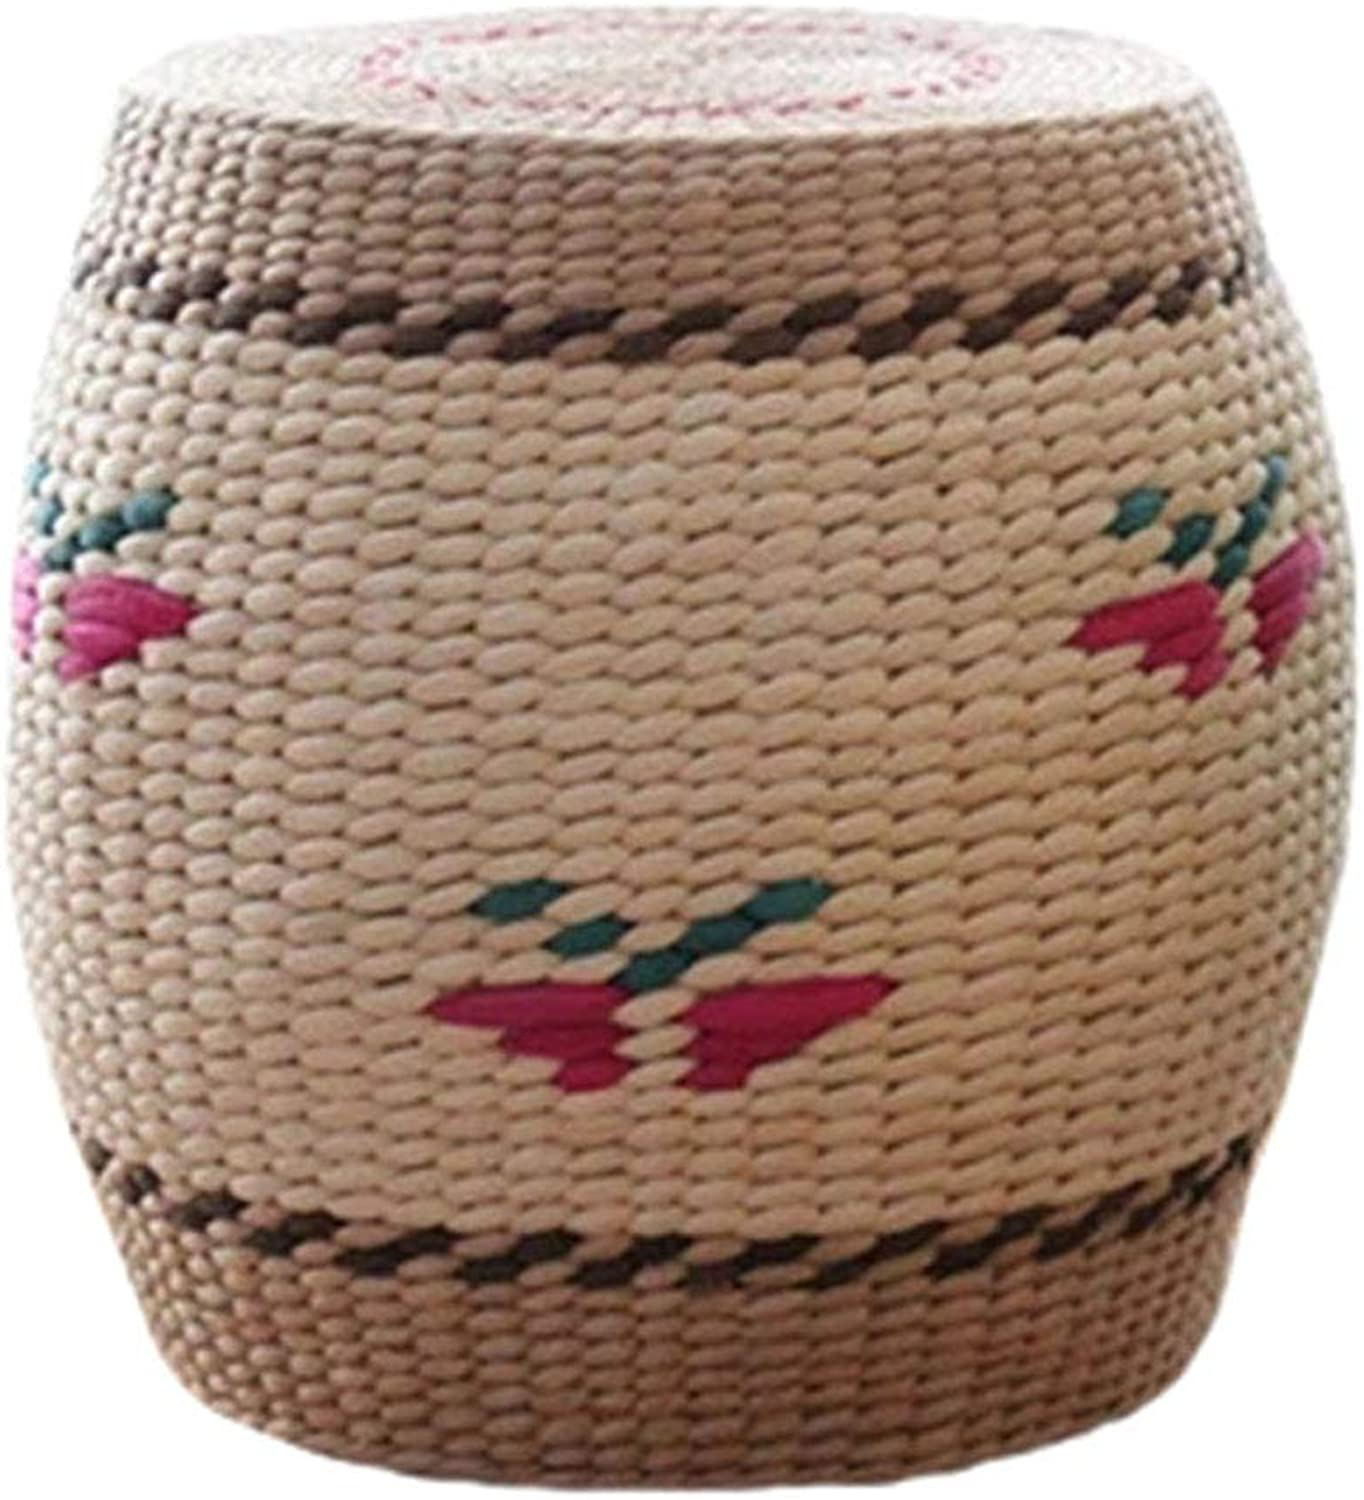 ZHAOYONGLI Stool Hand-Woven Small Stool Fashion Creative Stool Change shoes Stool Solid Wood Grass Sitting Living Room Coffee Table Stool Creative Solid Durable Long Lasting (color   C)